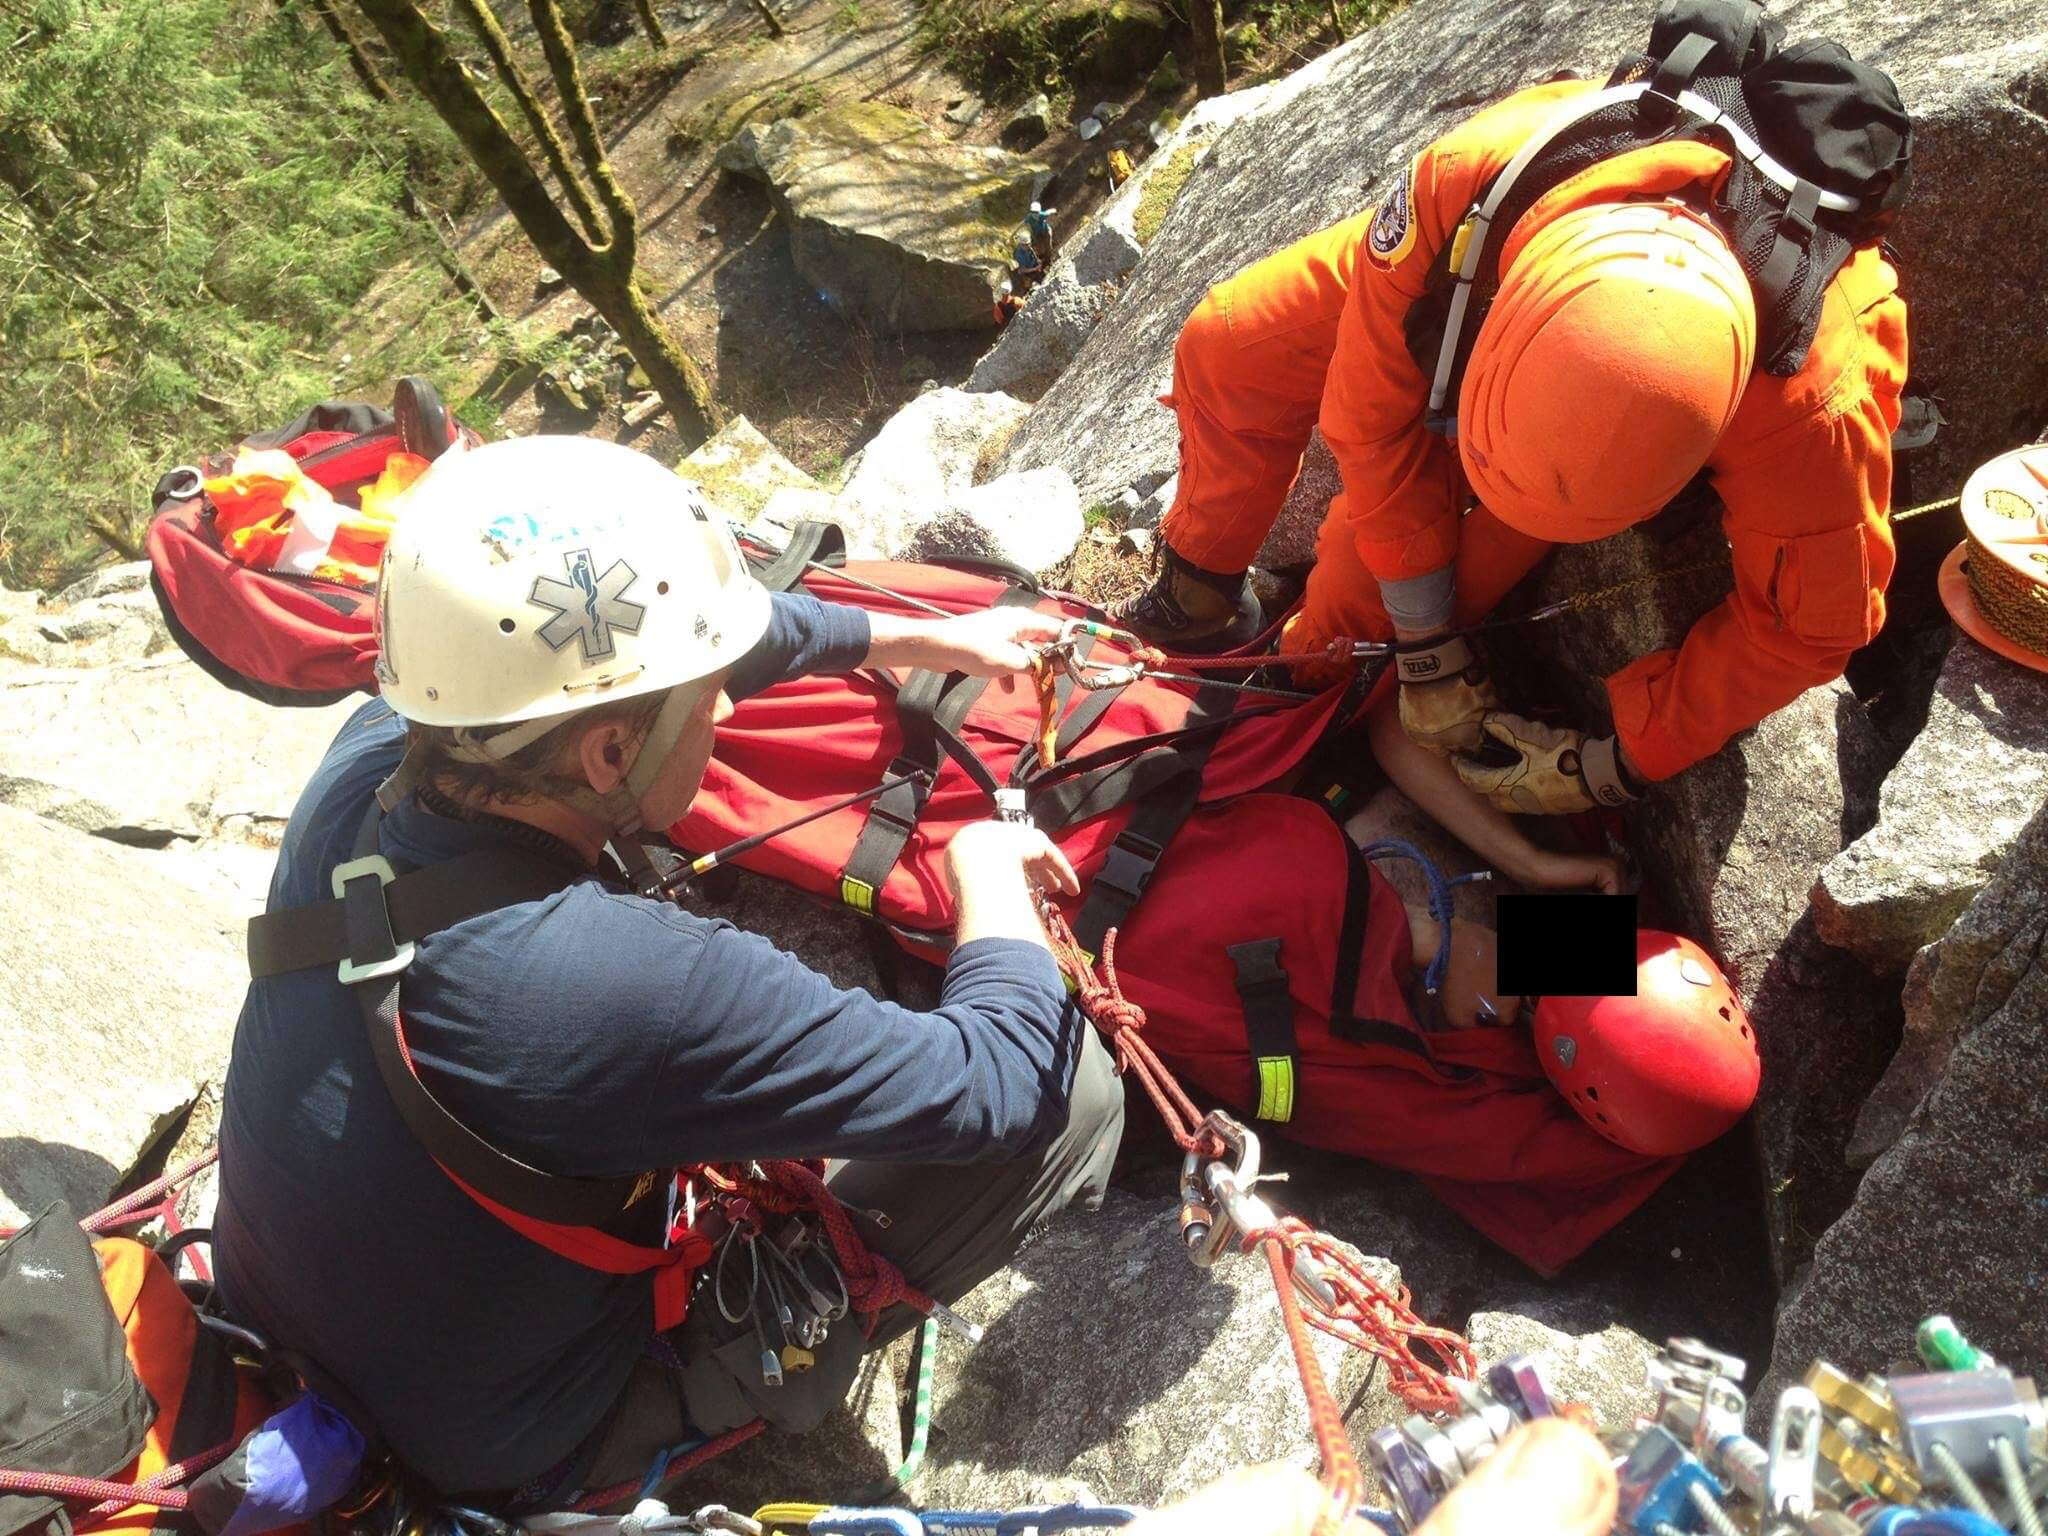 McDonough (in orange) provides patient care for an injured climber on a rock ledge in Index, Washington. He and his team located the climber and and coordinated a helicopter extraction via hoist from his location.